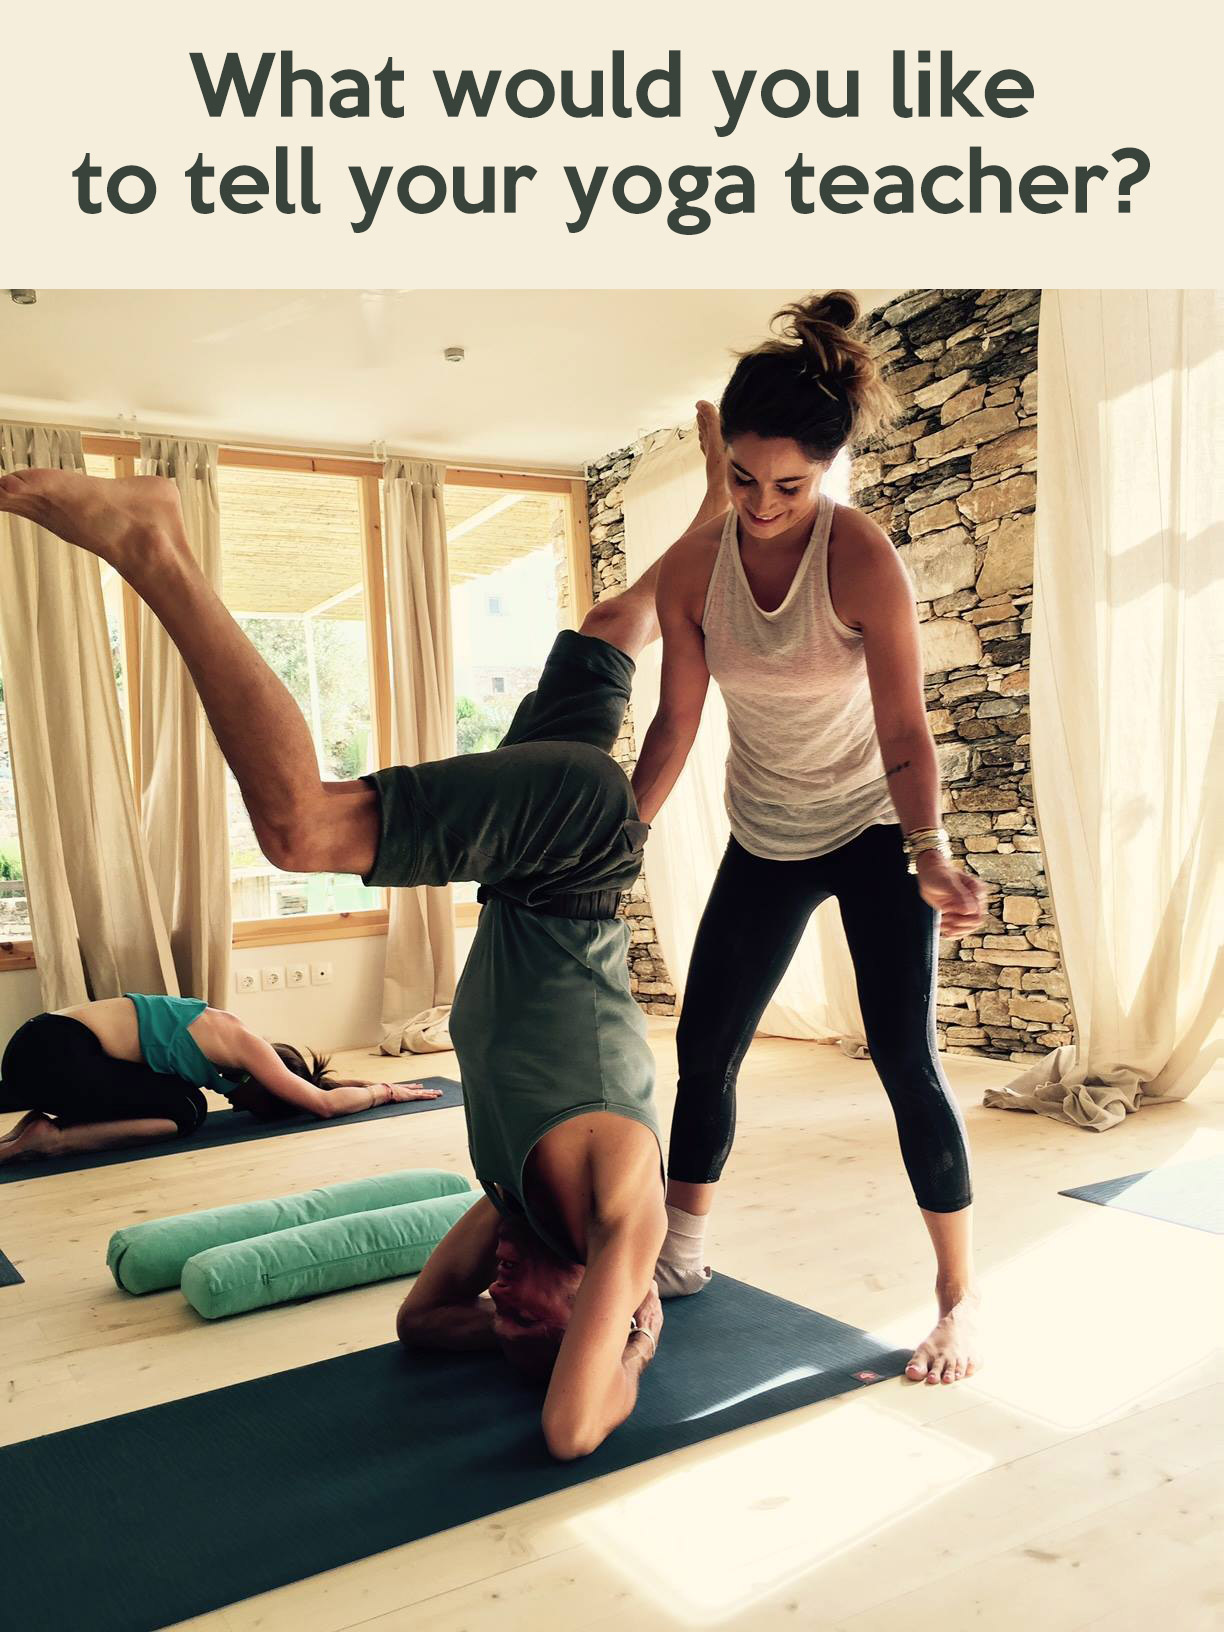 Pin it - what would you like to tell your yoga teacher?